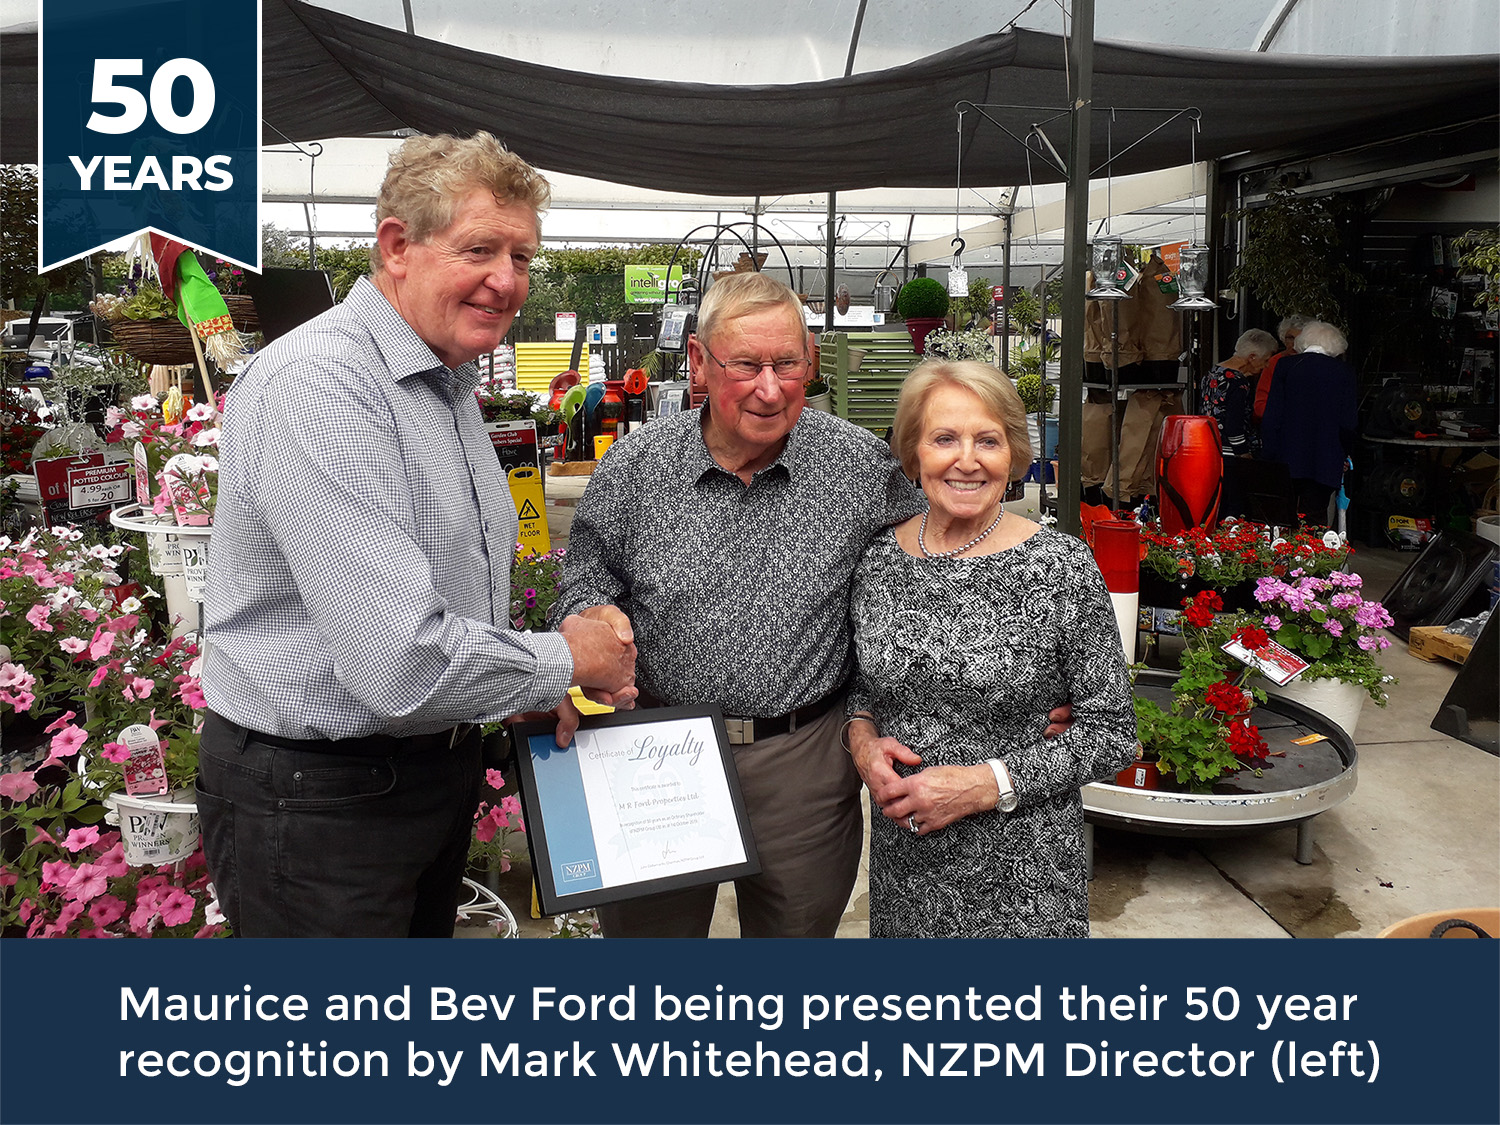 Maurice and Bev Ford - 50 year recognition